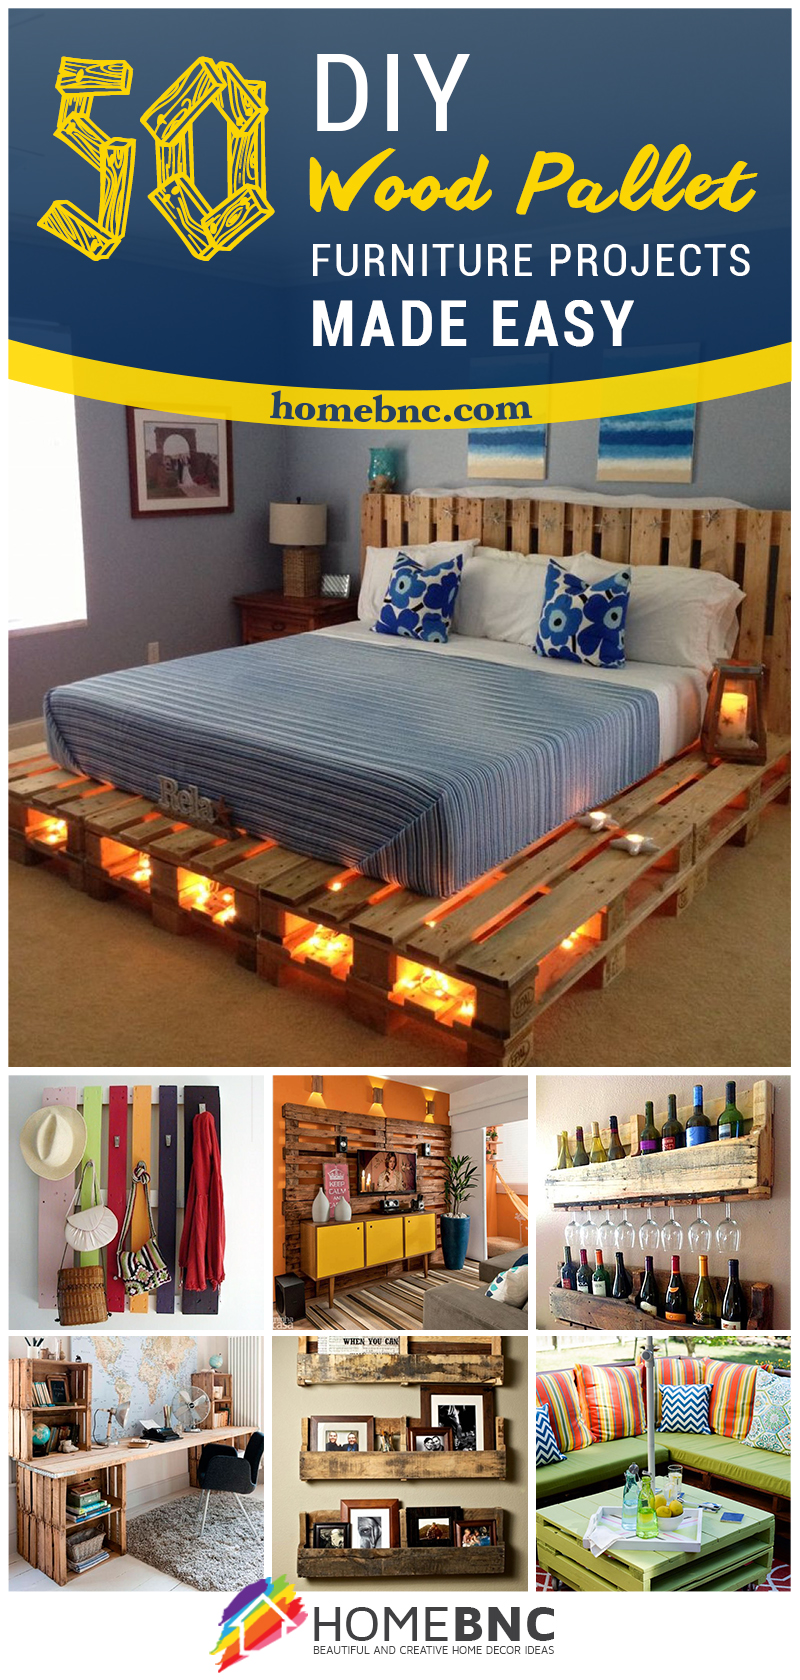 furniture out of wood pallets bar 50 diy wood pallet furniture projects made easy best creative design ideas for 2018